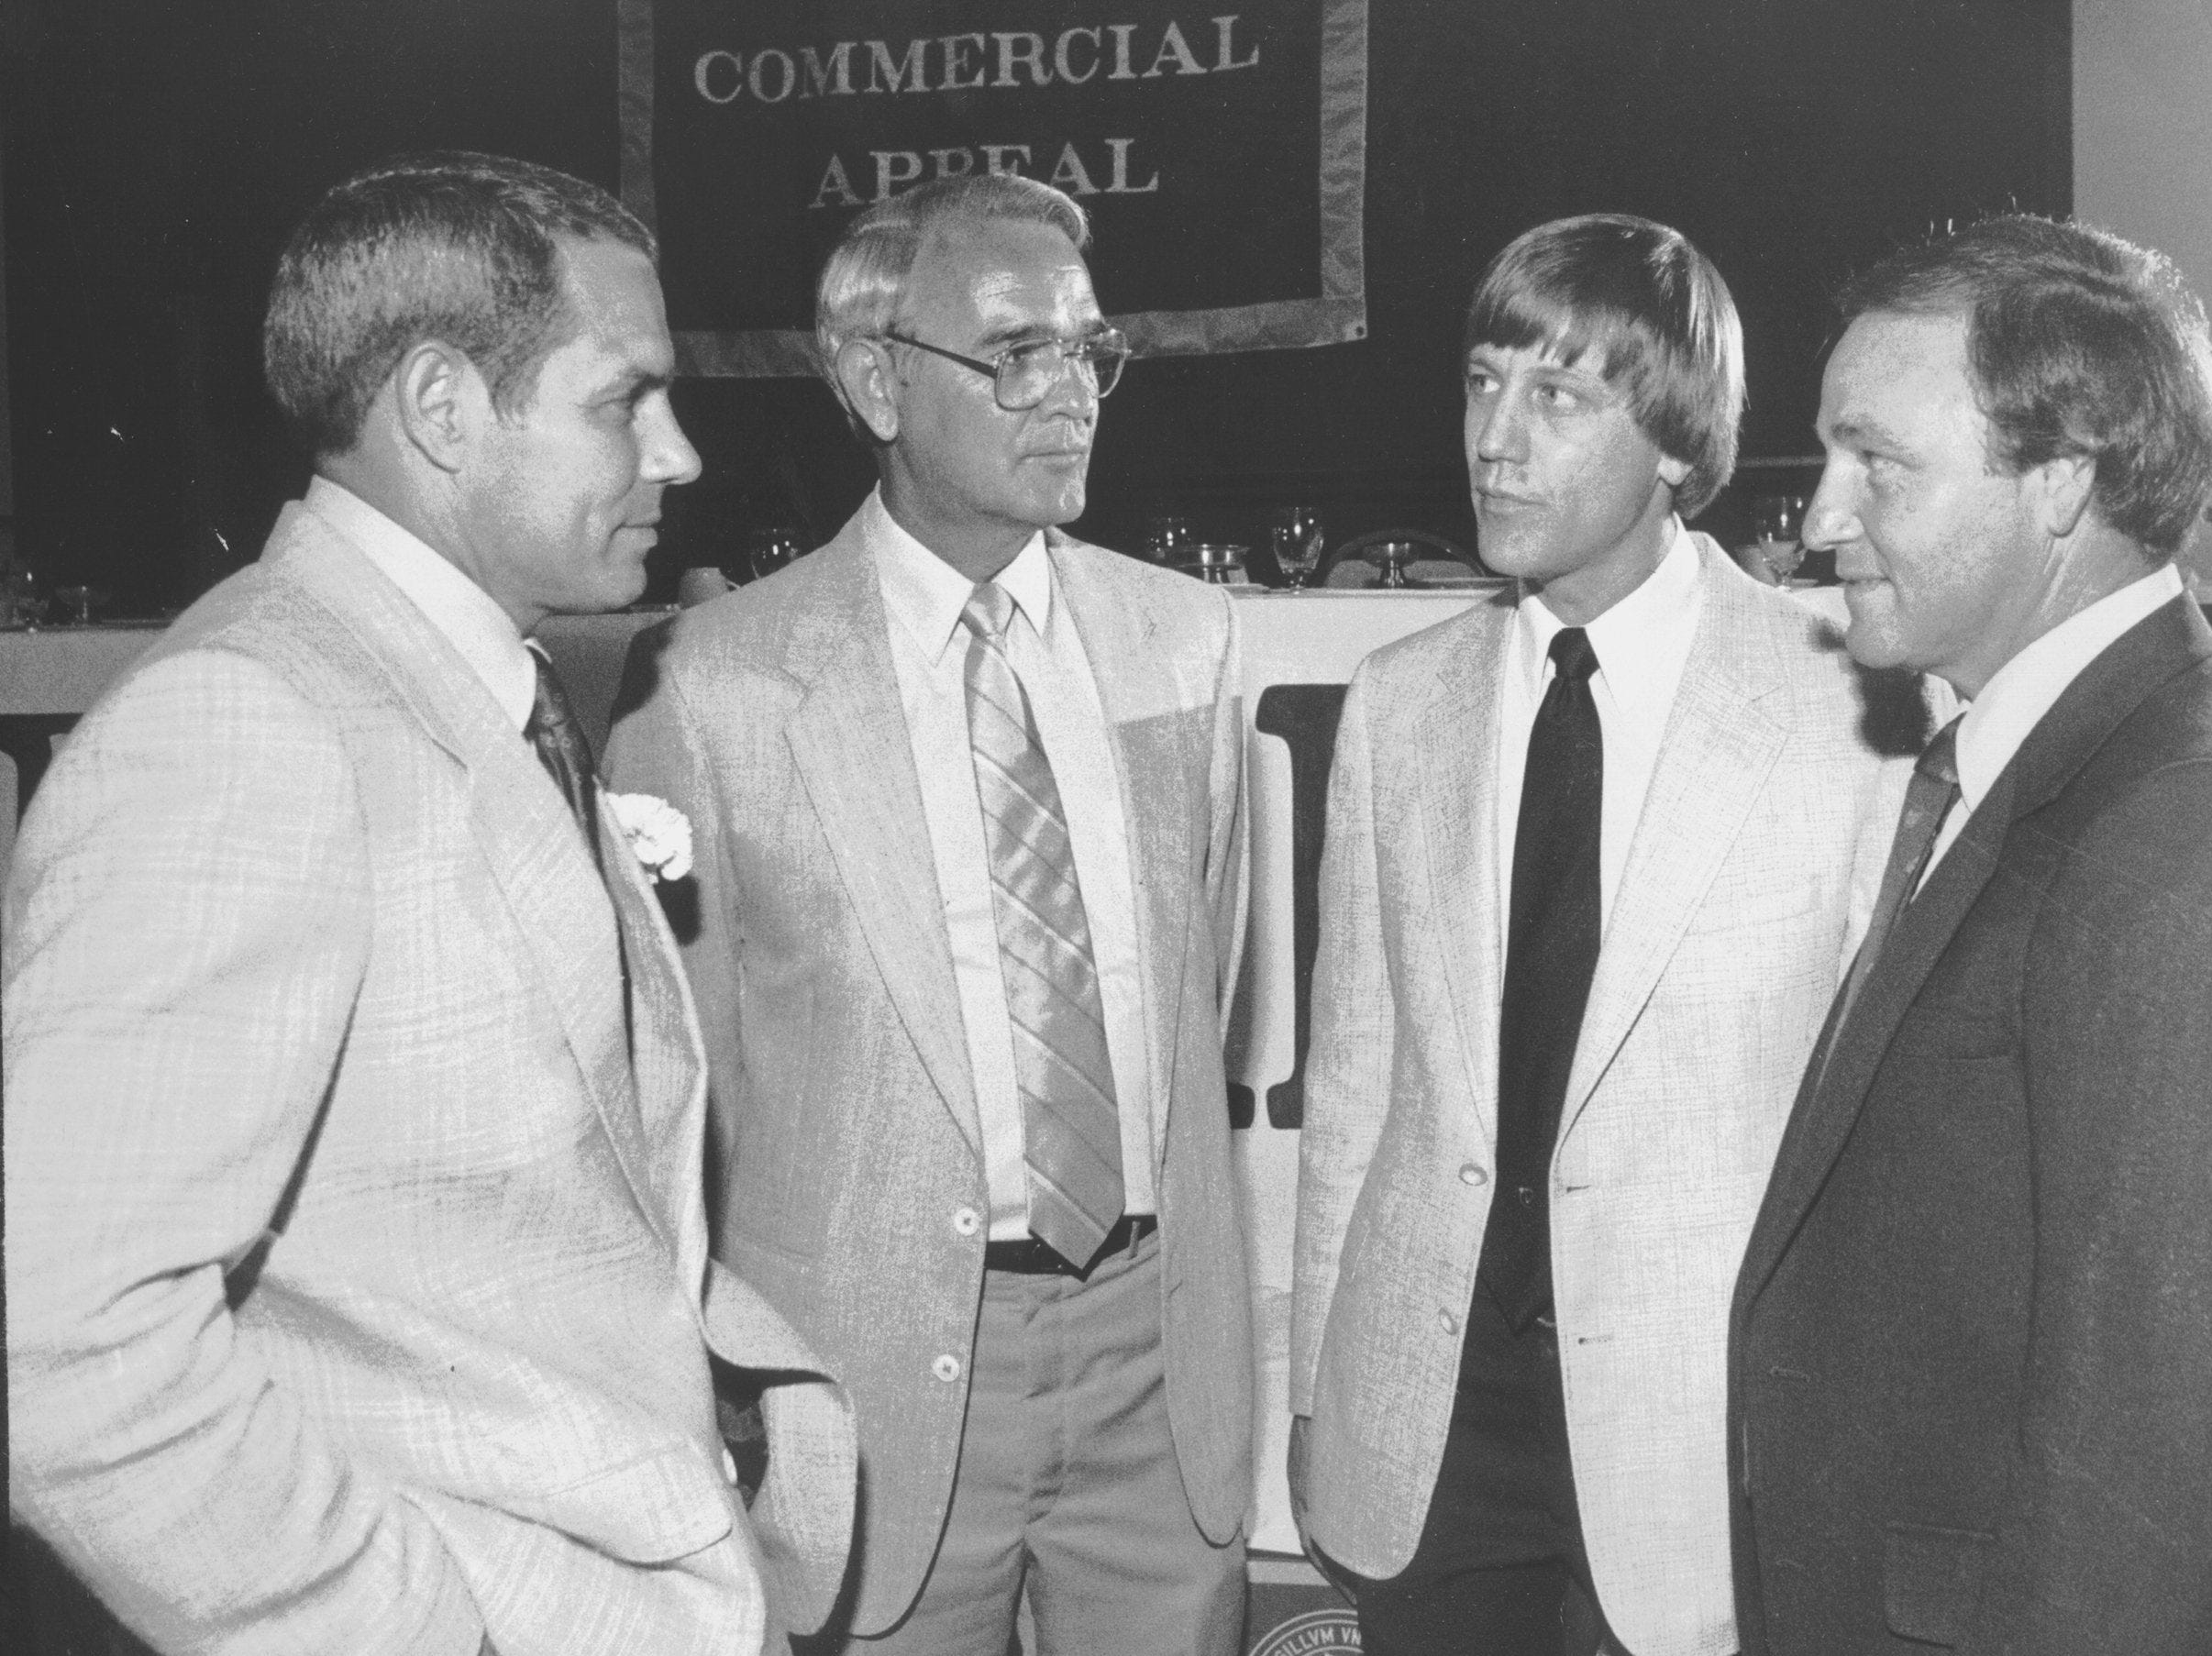 "Ken Hatfield (Left), head football coach at the University of Arkansas, speaks with (From Left) Ken Netherland, of Class ""AAA"" Germantown High School, Danny Mathis of Class ""AA"" Kirby High School and Jimmy Heinz of Class ""A"" Evangelical Christian School at the Best of The Preps awards banquet on 14 May 1984. Hatfield was the featured speaker and the other coaches were named Male Sports Coach of the Year in their respective divisions."